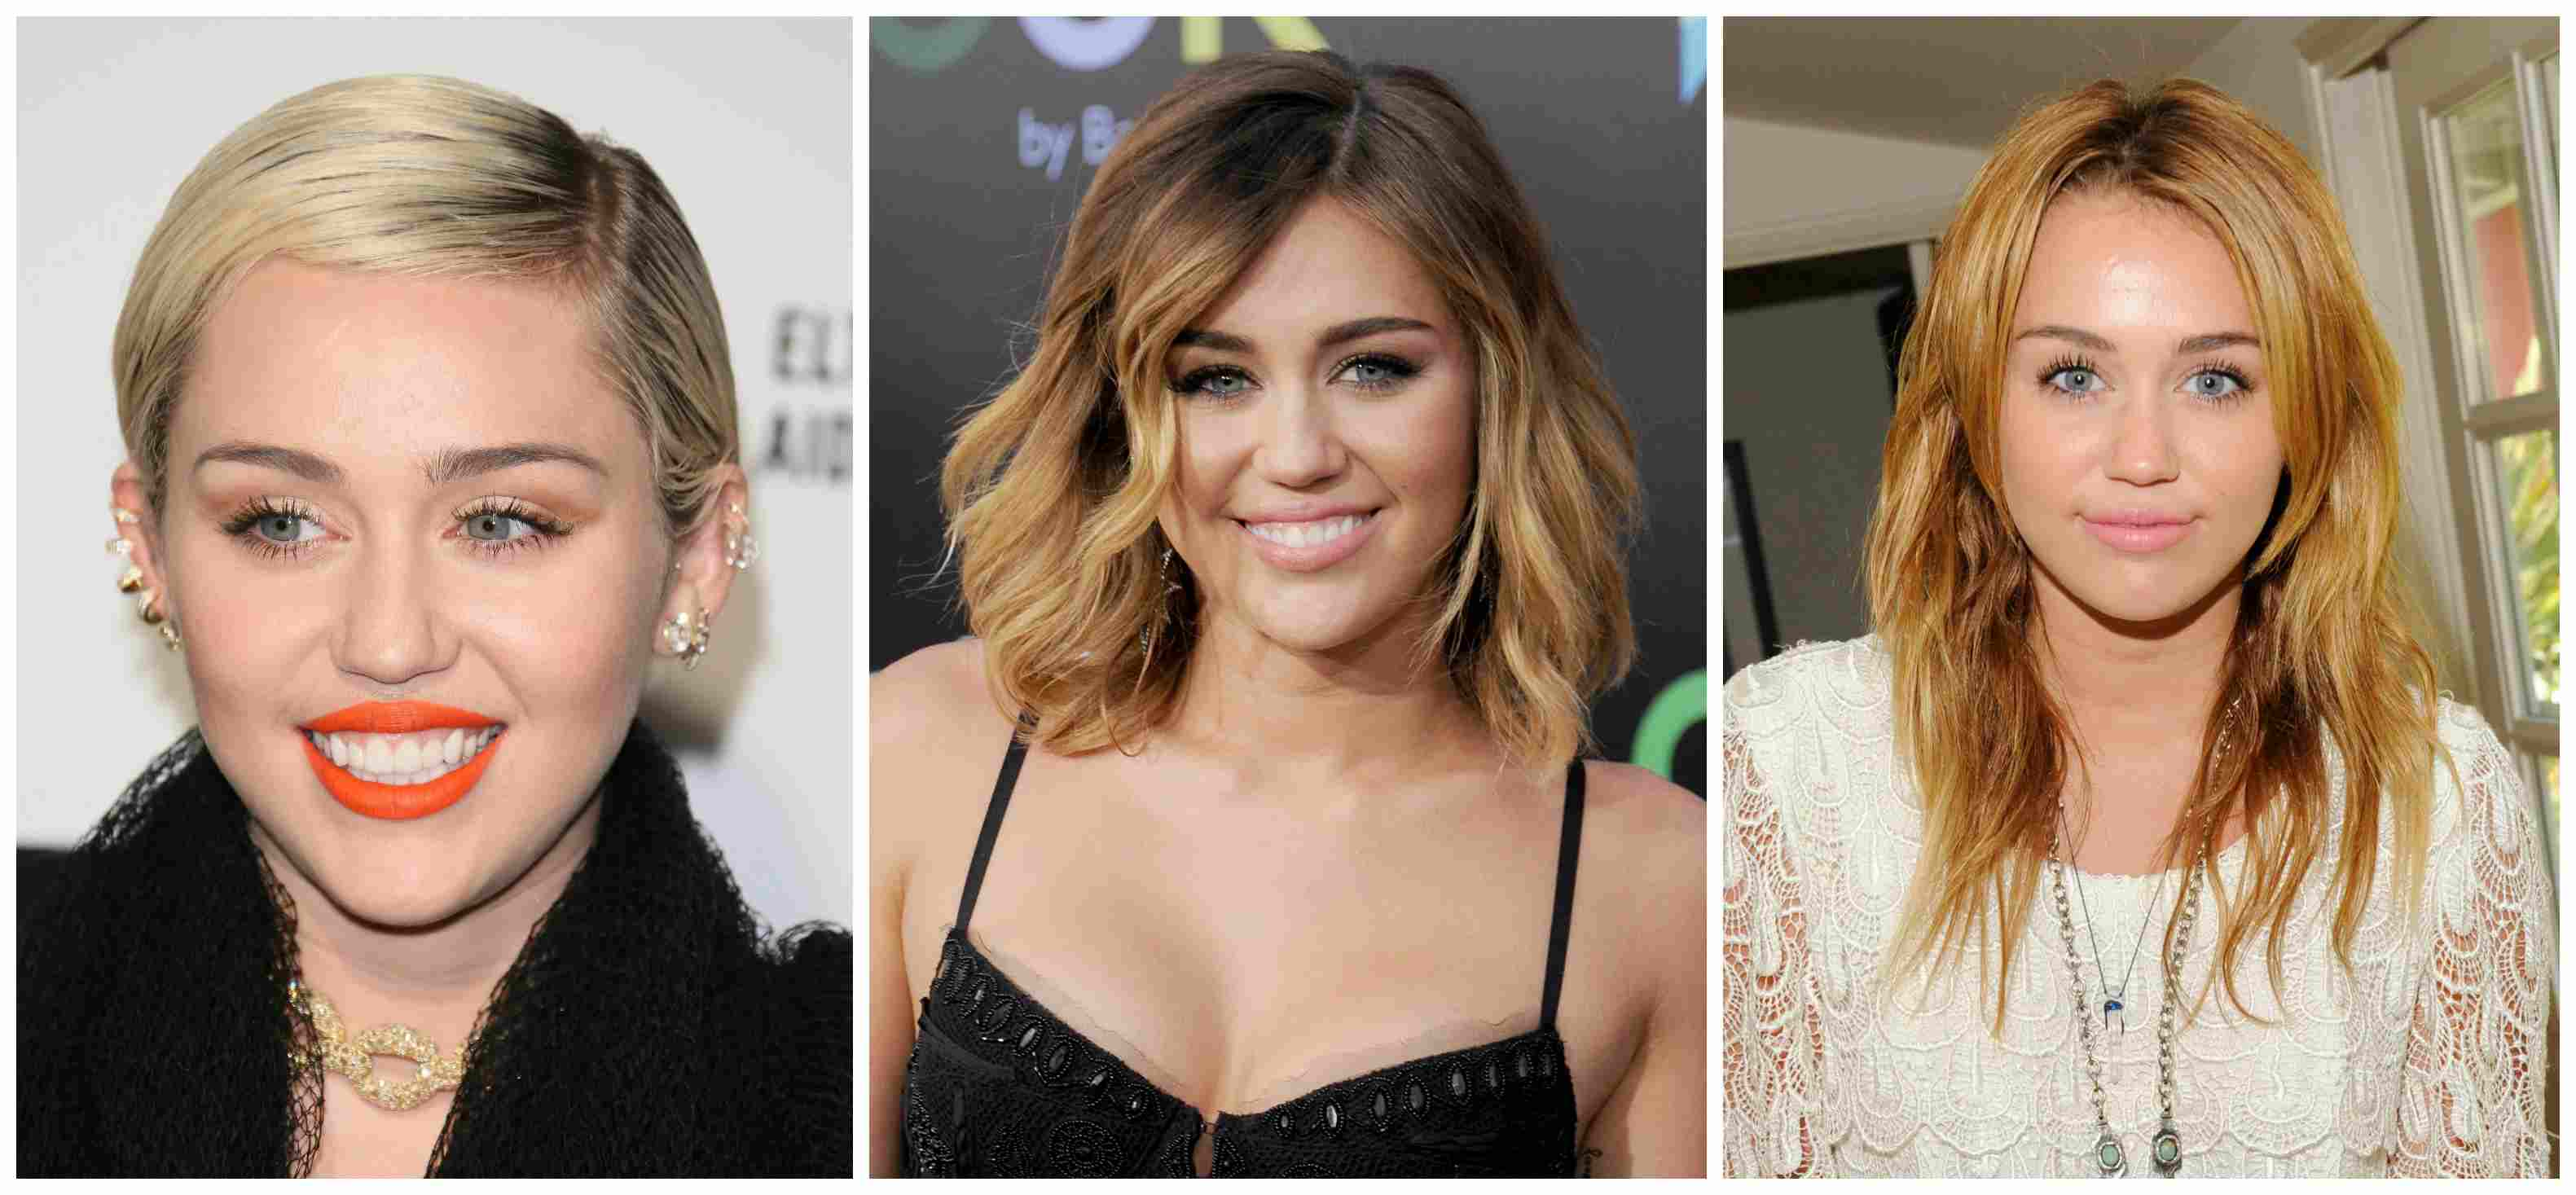 3 hair lengths, one woman: which suits her best?